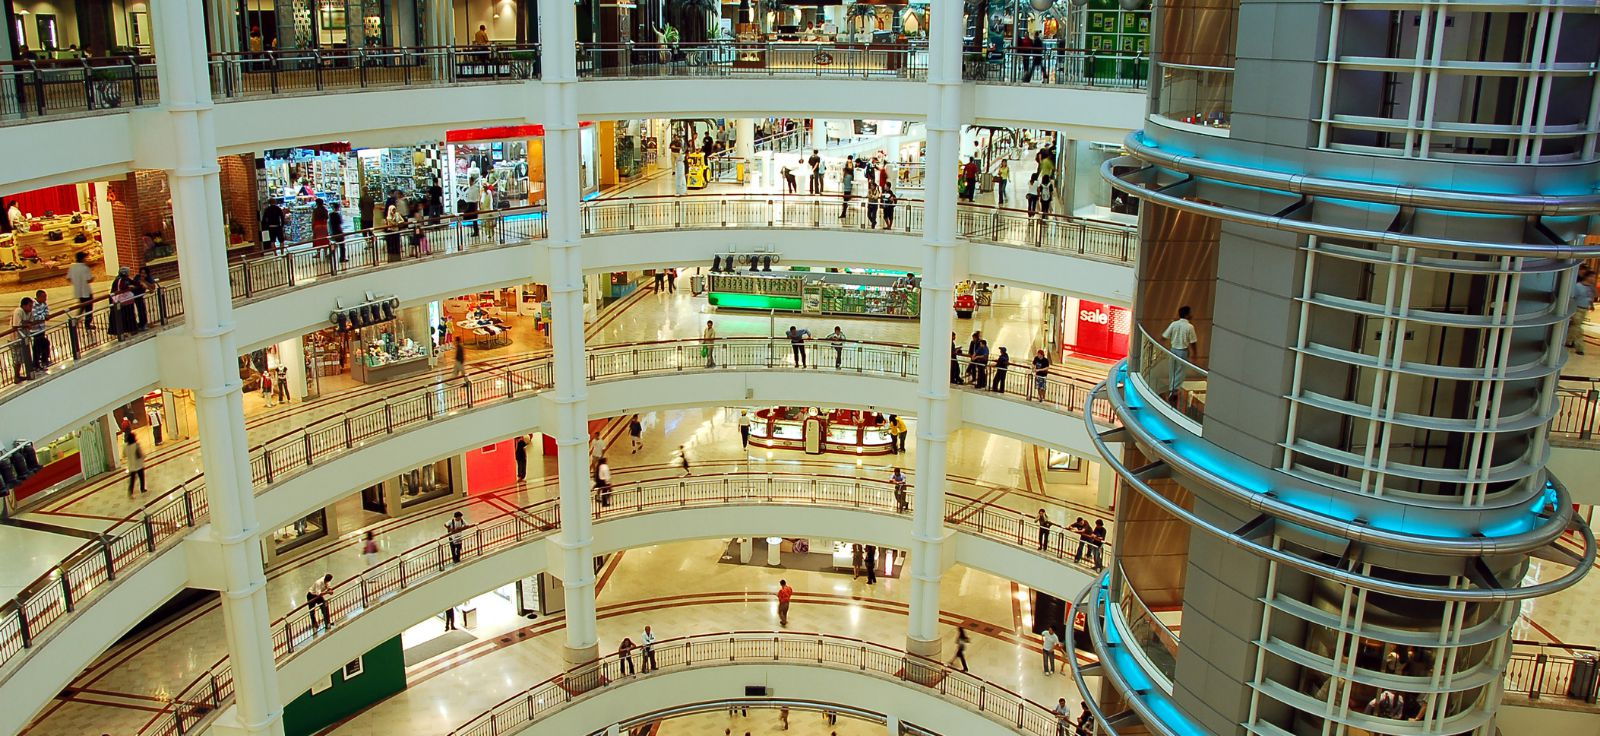 Best Shopping Malls of US